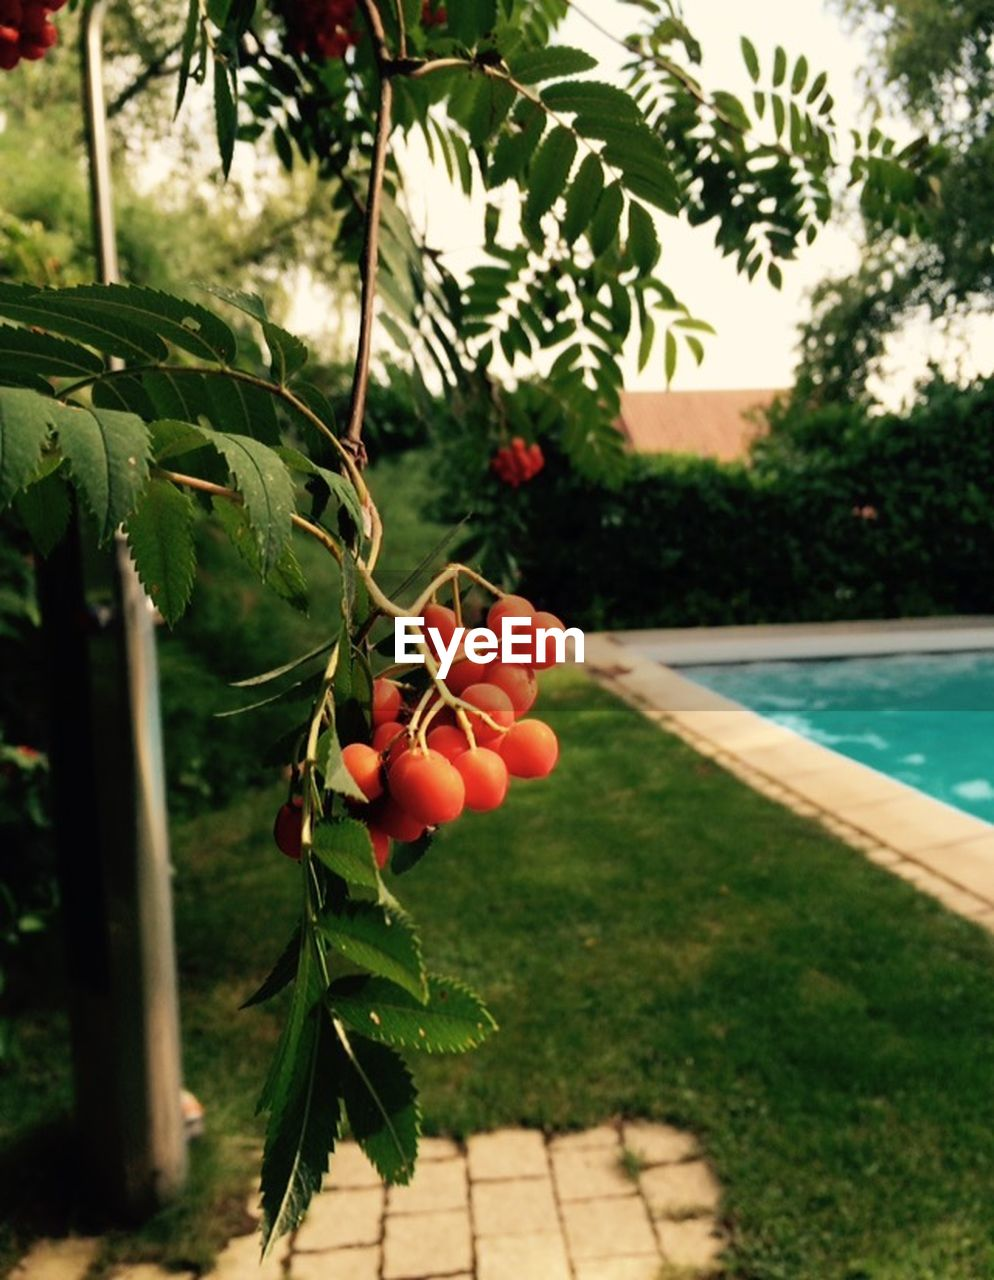 tree, day, food and drink, growth, outdoors, focus on foreground, nature, fruit, leaf, no people, food, water, freshness, beauty in nature, plant, healthy eating, swimming pool, close-up